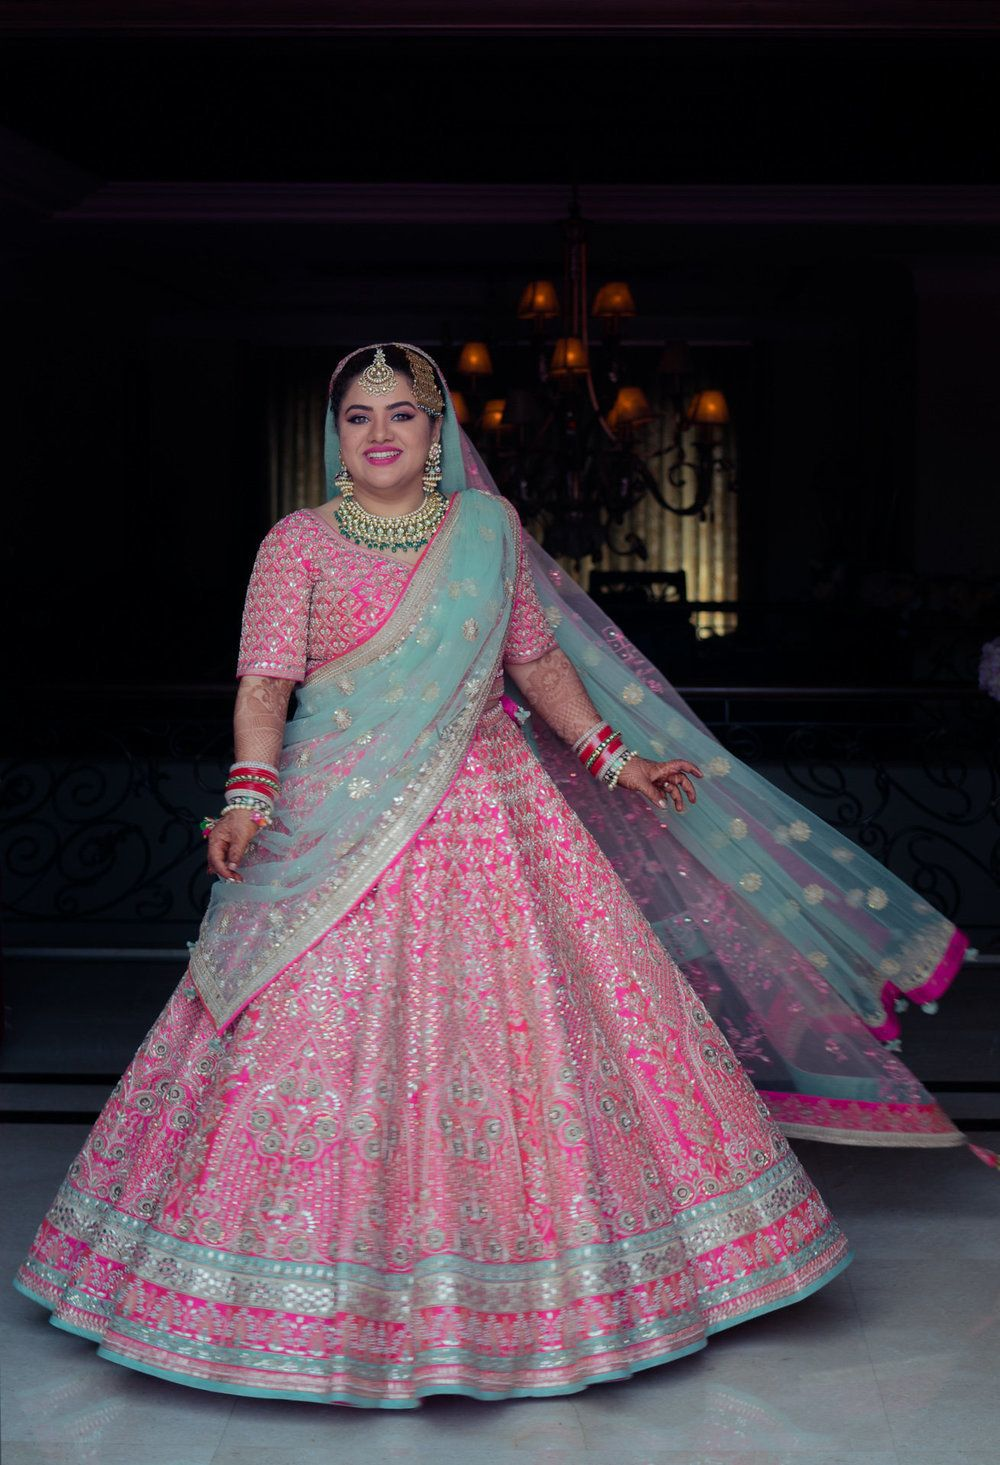 Photo of Twirling bride in pretty pink and turquoise lehenga